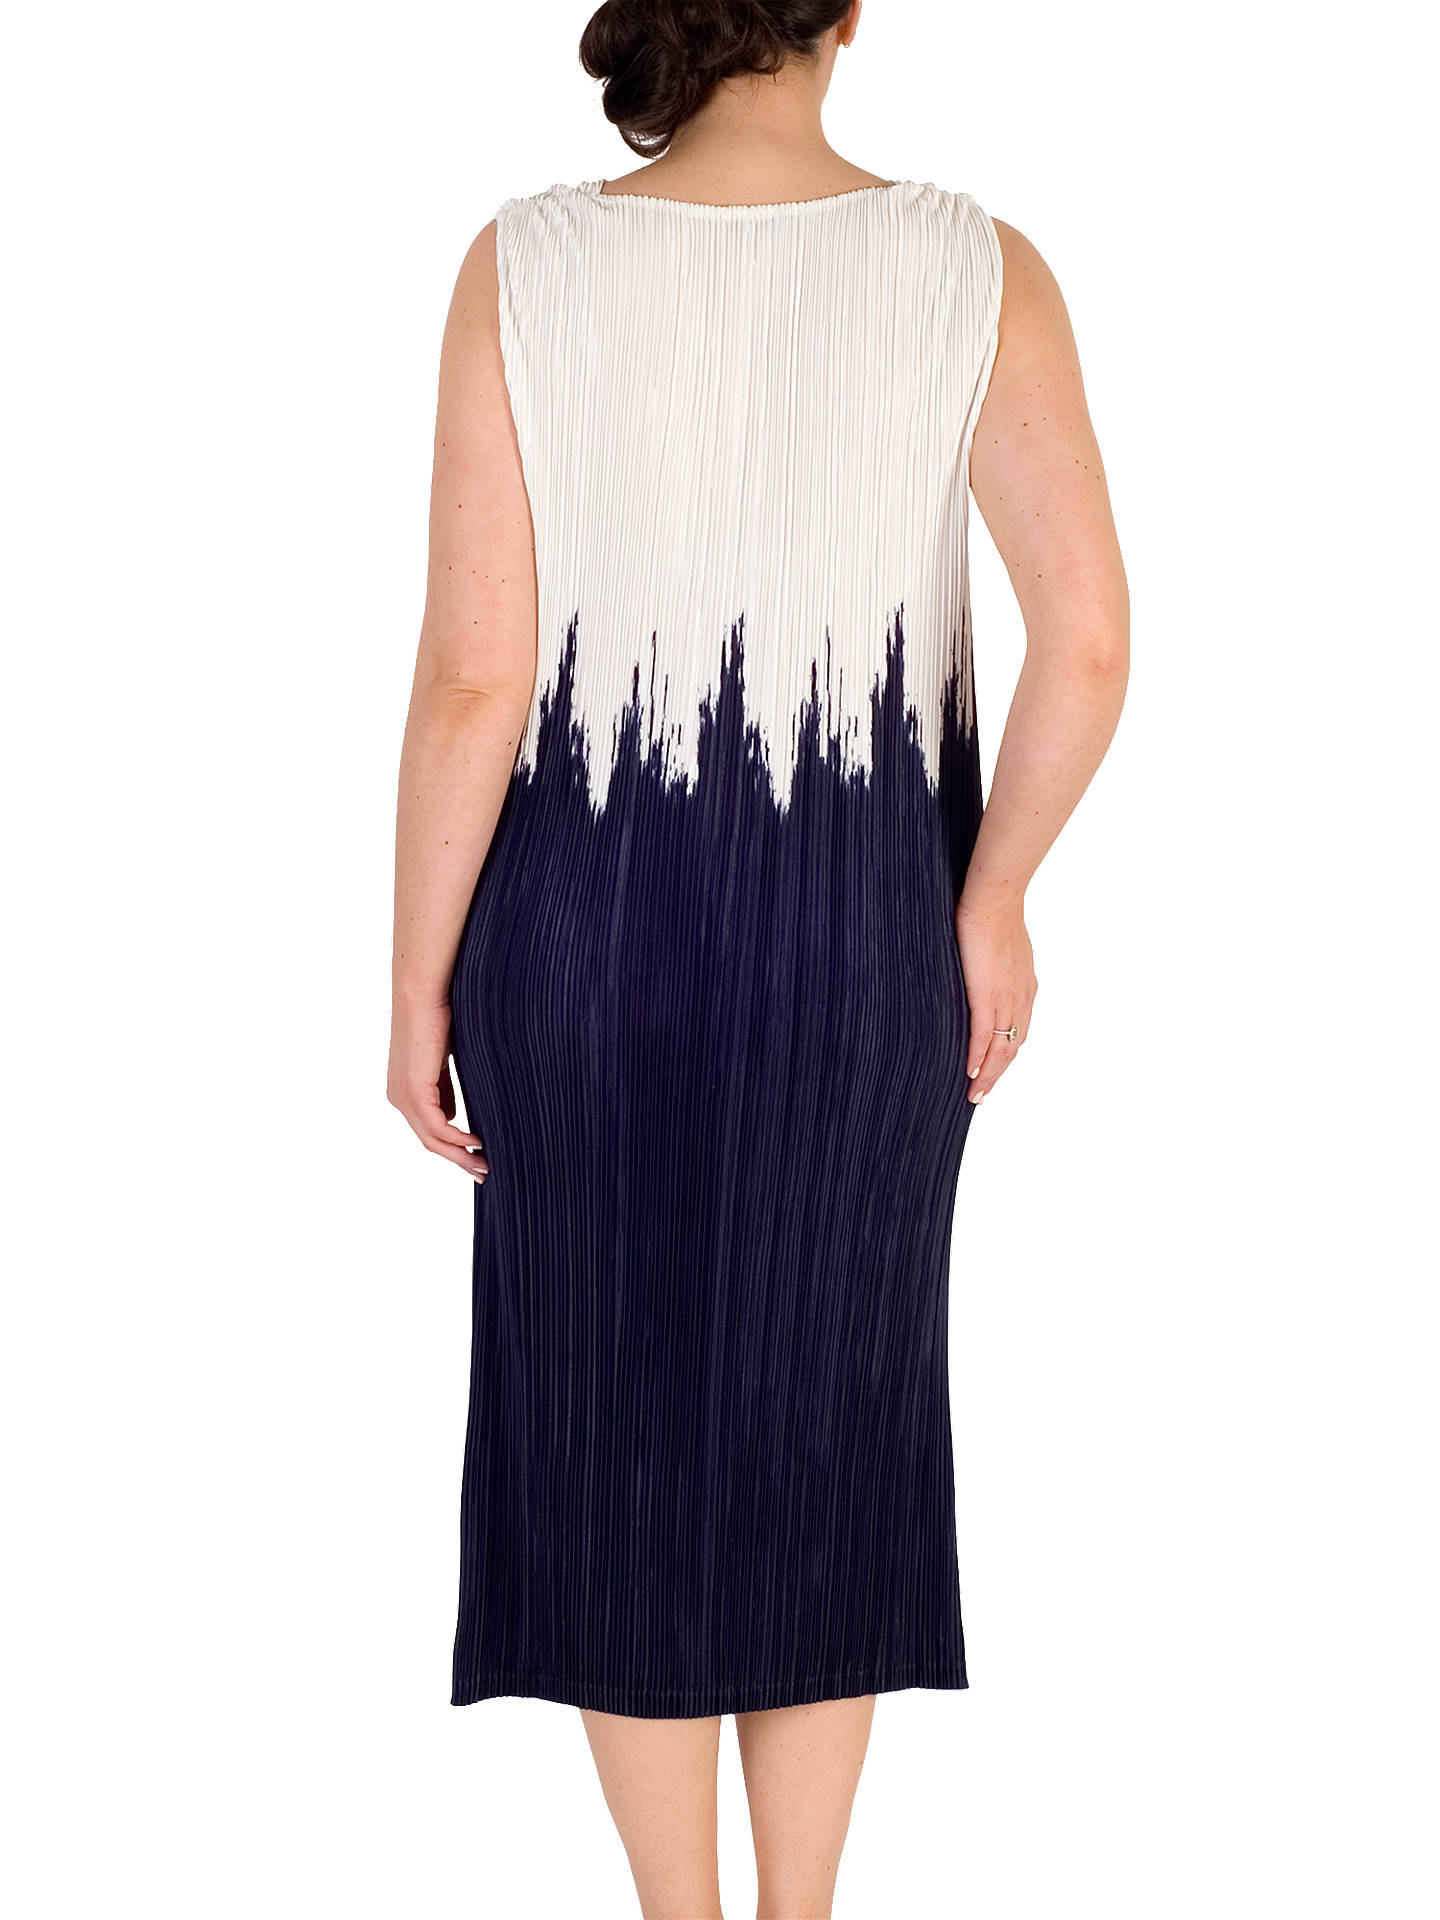 BuyChesca Colourblock Dress, Ivory/Blue, 12-14 Online at johnlewis.com